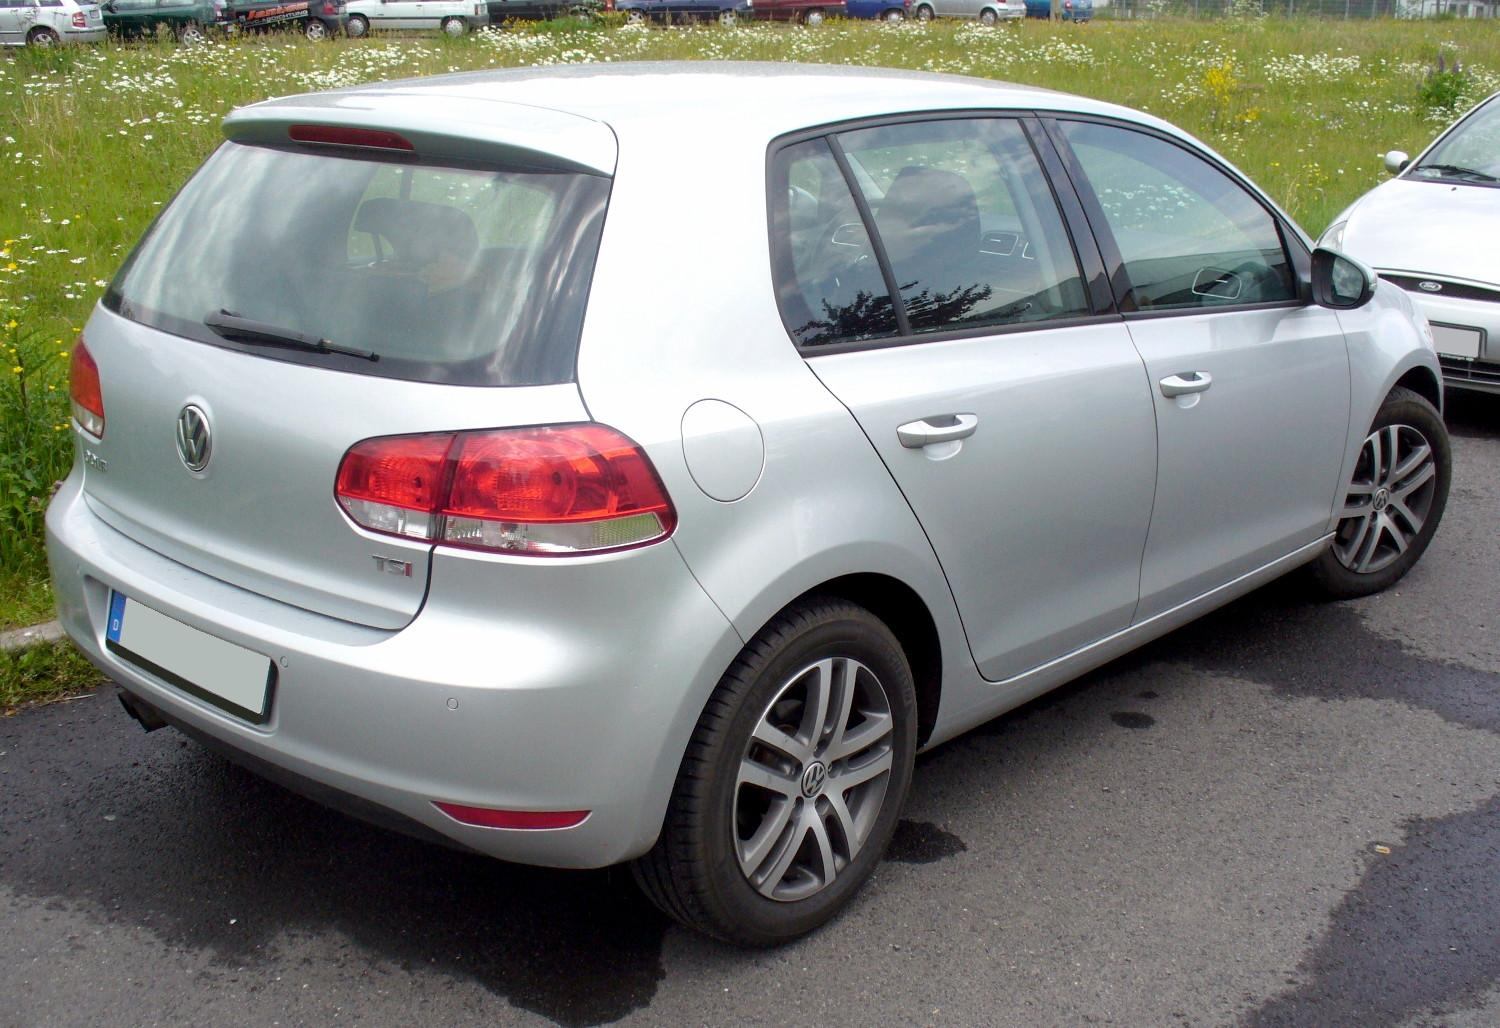 vw golf 1 4 tsi technical details history photos on